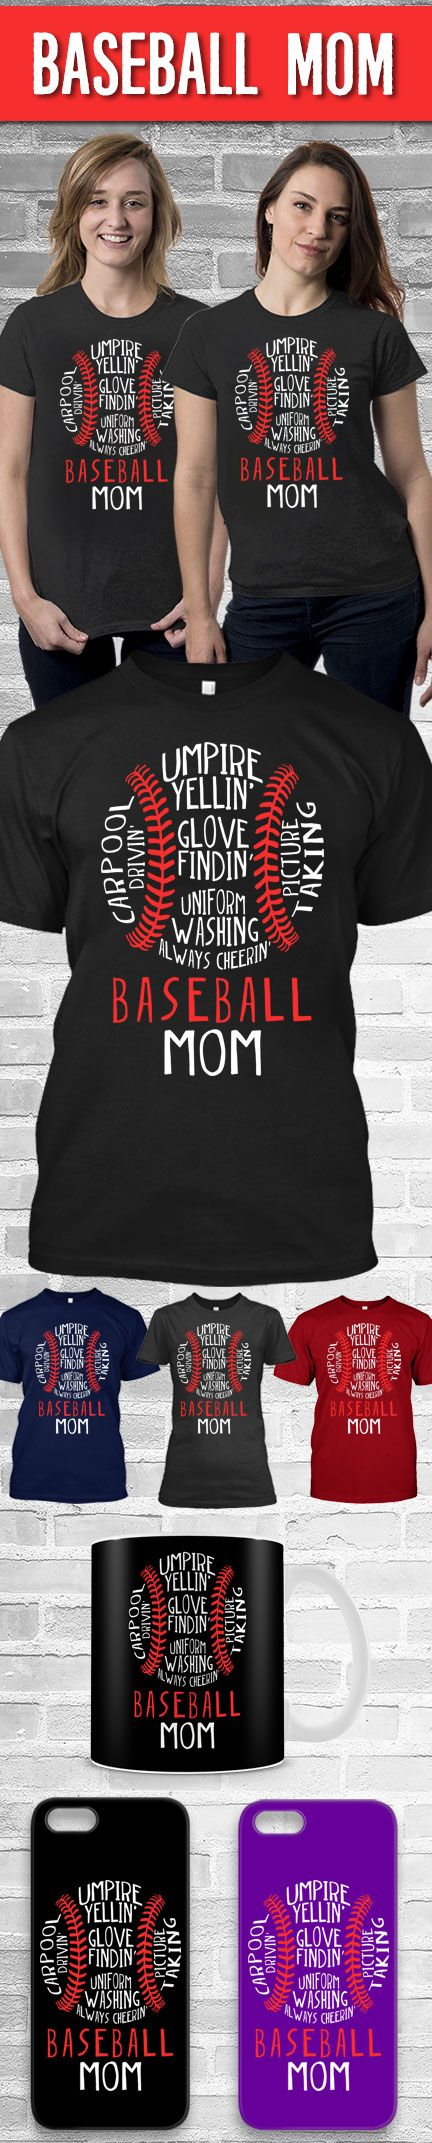 Baseball Mom Shirt! Click The Image To Buy It Now or Tag Someone You Want To Buy This For.  #baseball